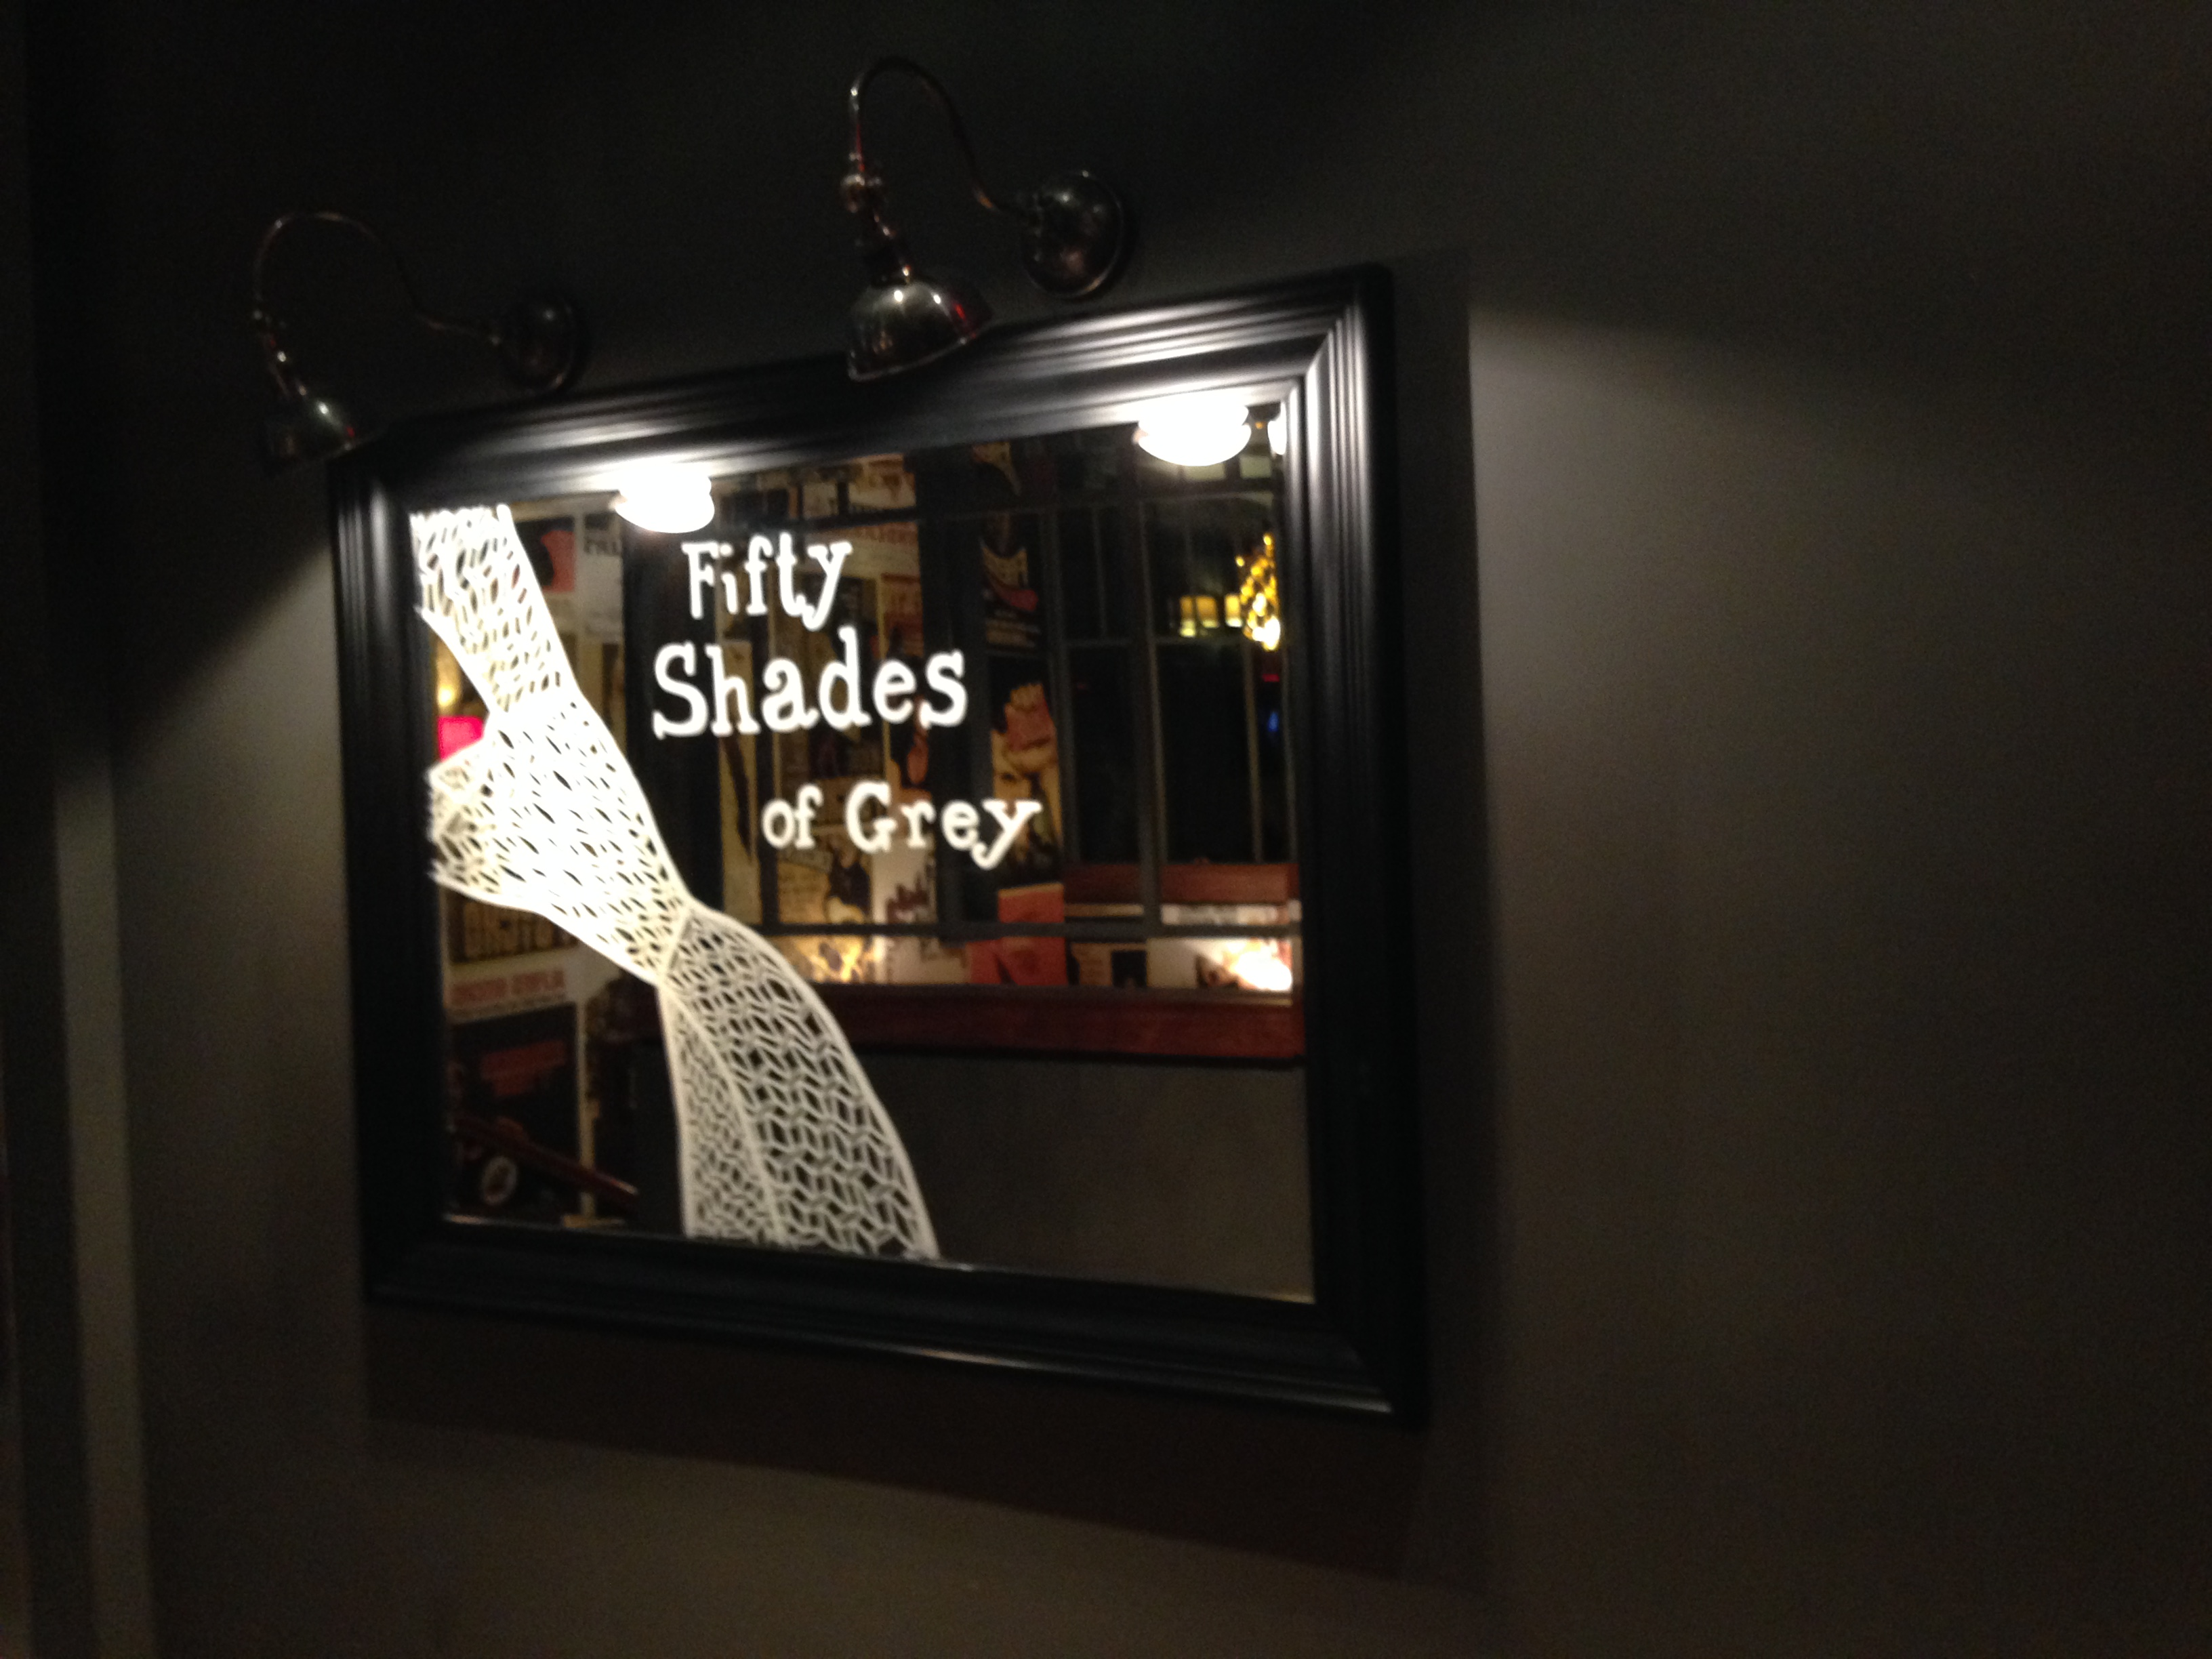 Fifty Shades of Grey at Everyman Cinema